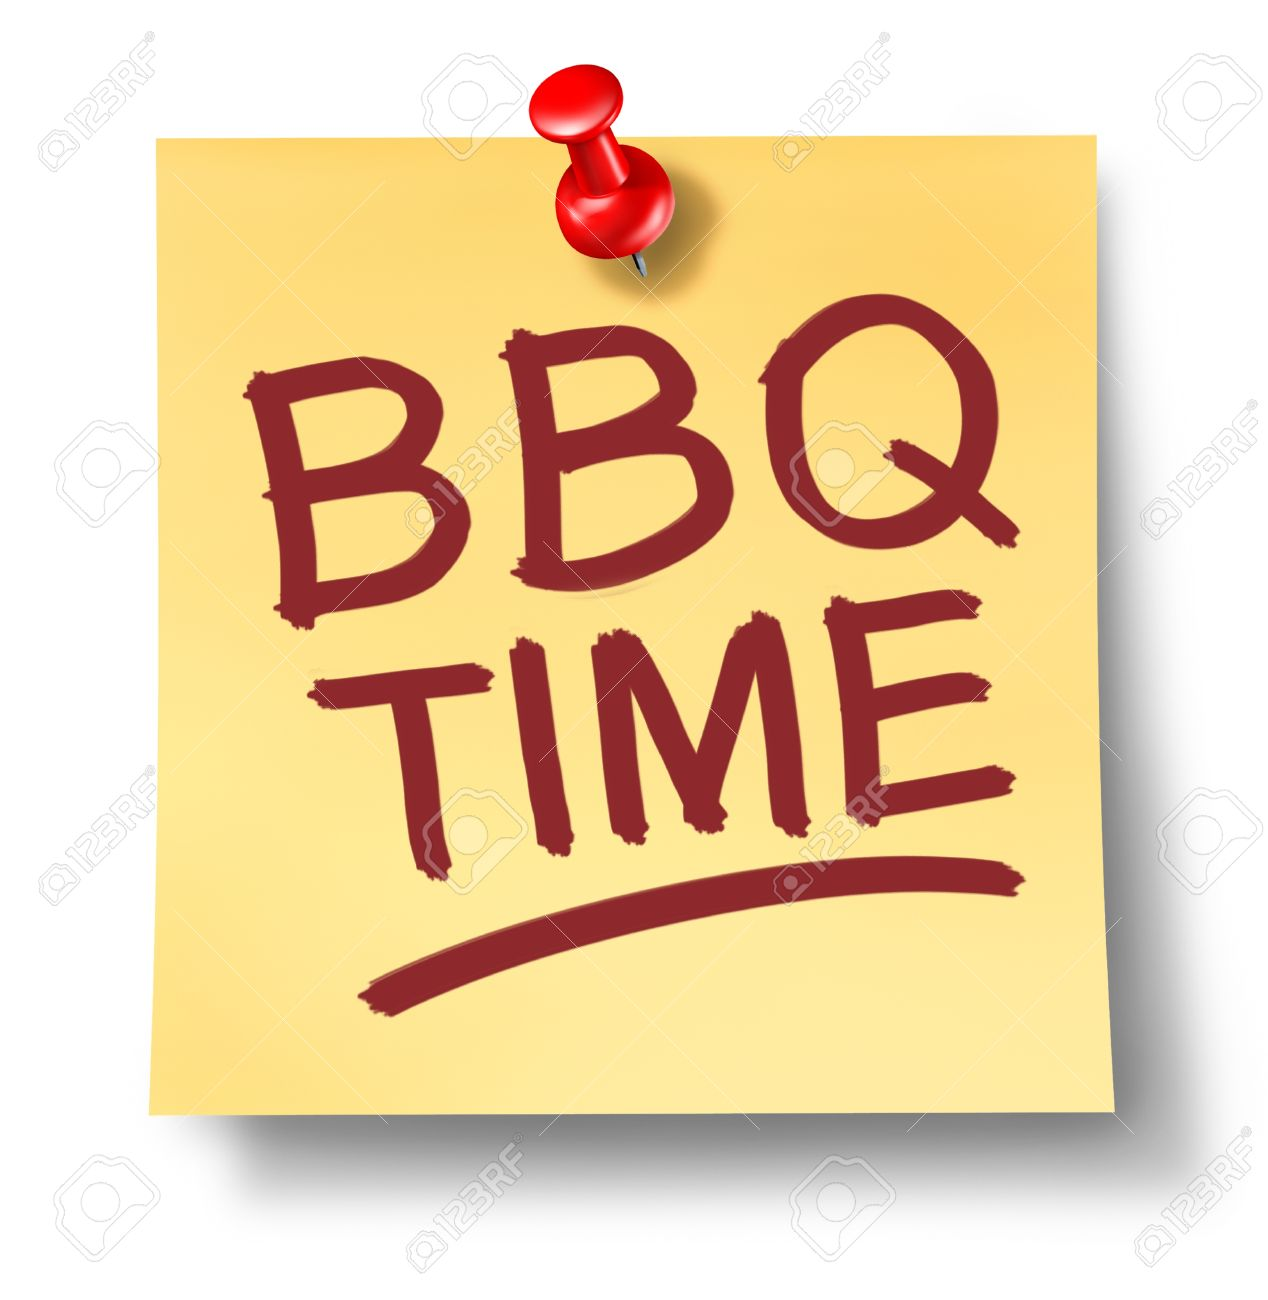 Barbecue Office Note Saying Bbq Time On A White Background With